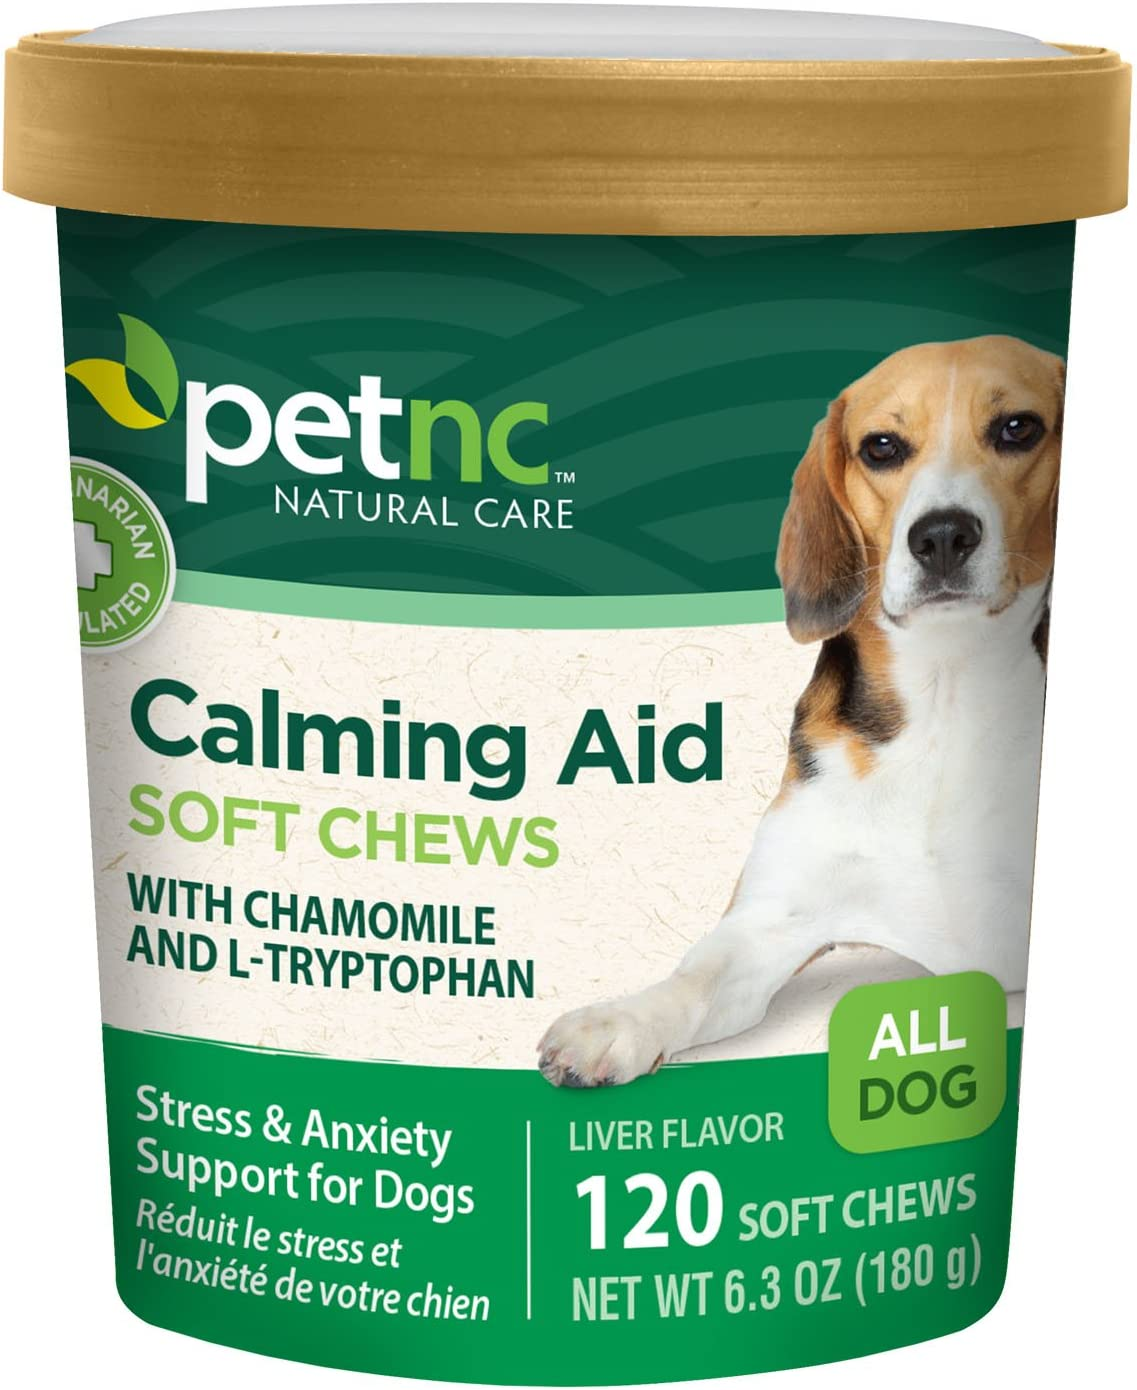 PetNC Natural Care Calming Aid Soft Chews Dog Supplement